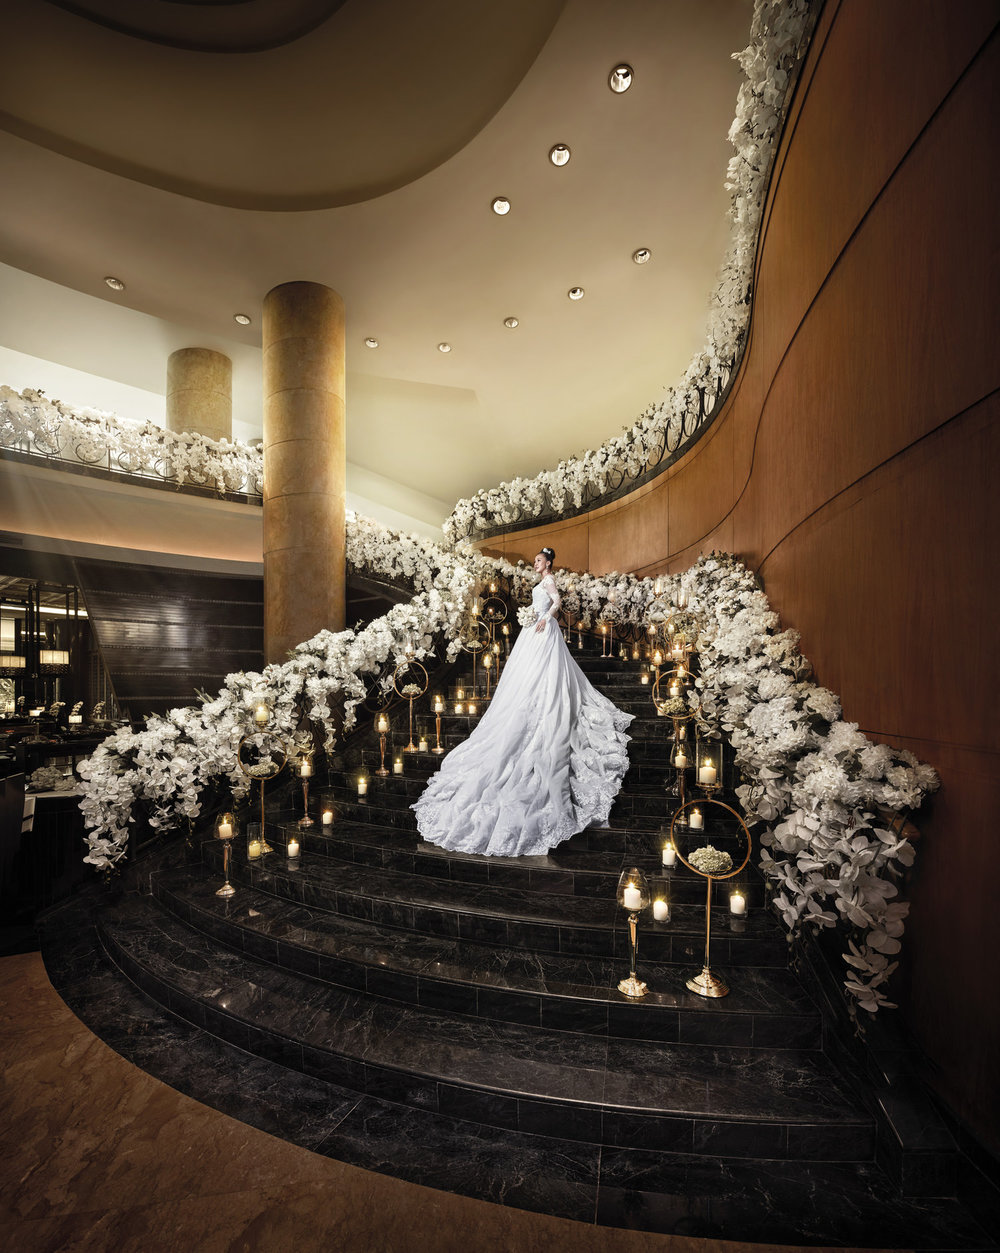 Bride+at+Grand+Staircase.jpg